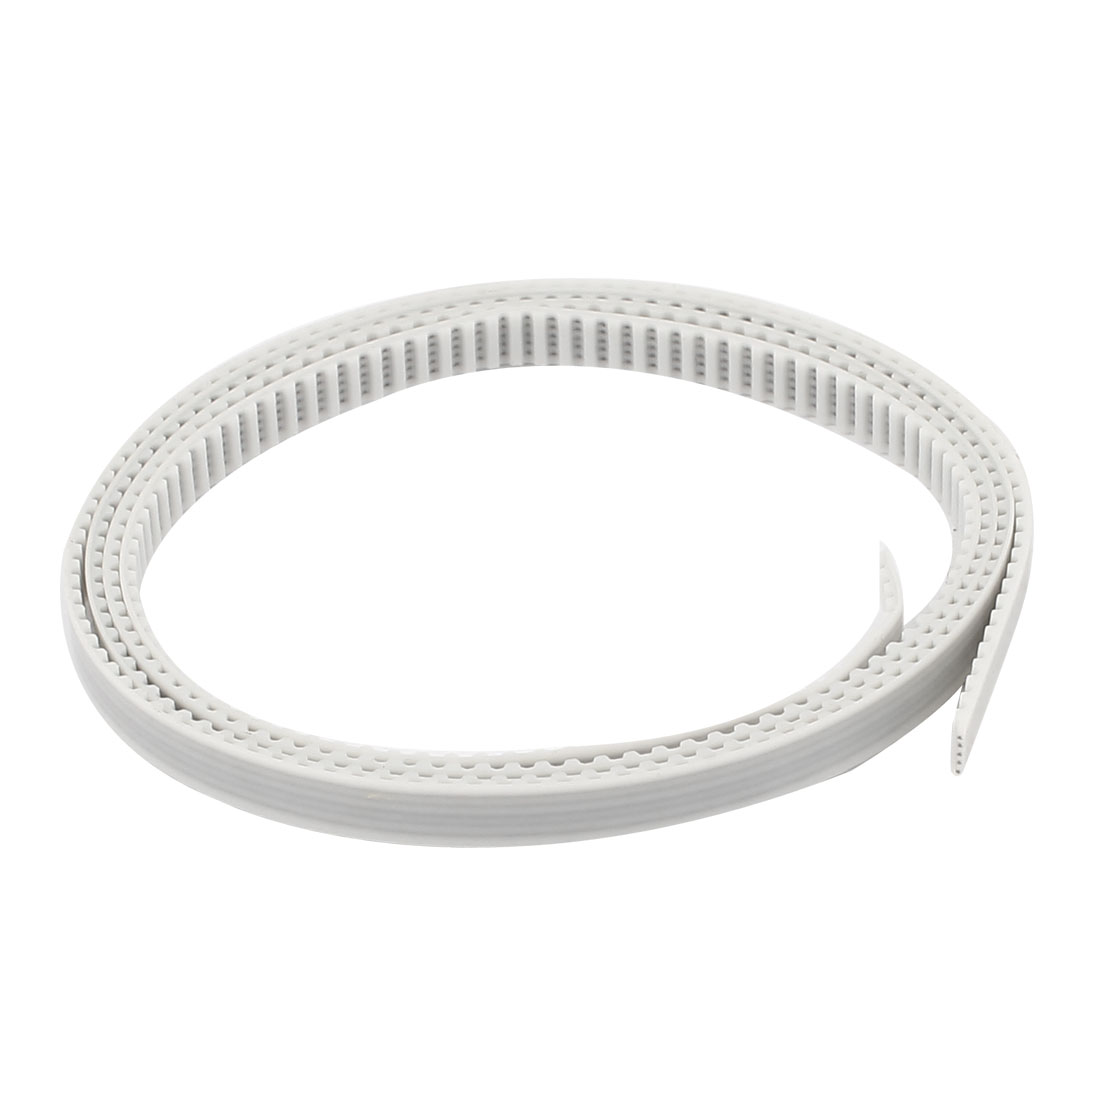 T2.5-6 2.5mm Pitch 6mm Width 1M Open Ended Timing Belt for 3D Printers